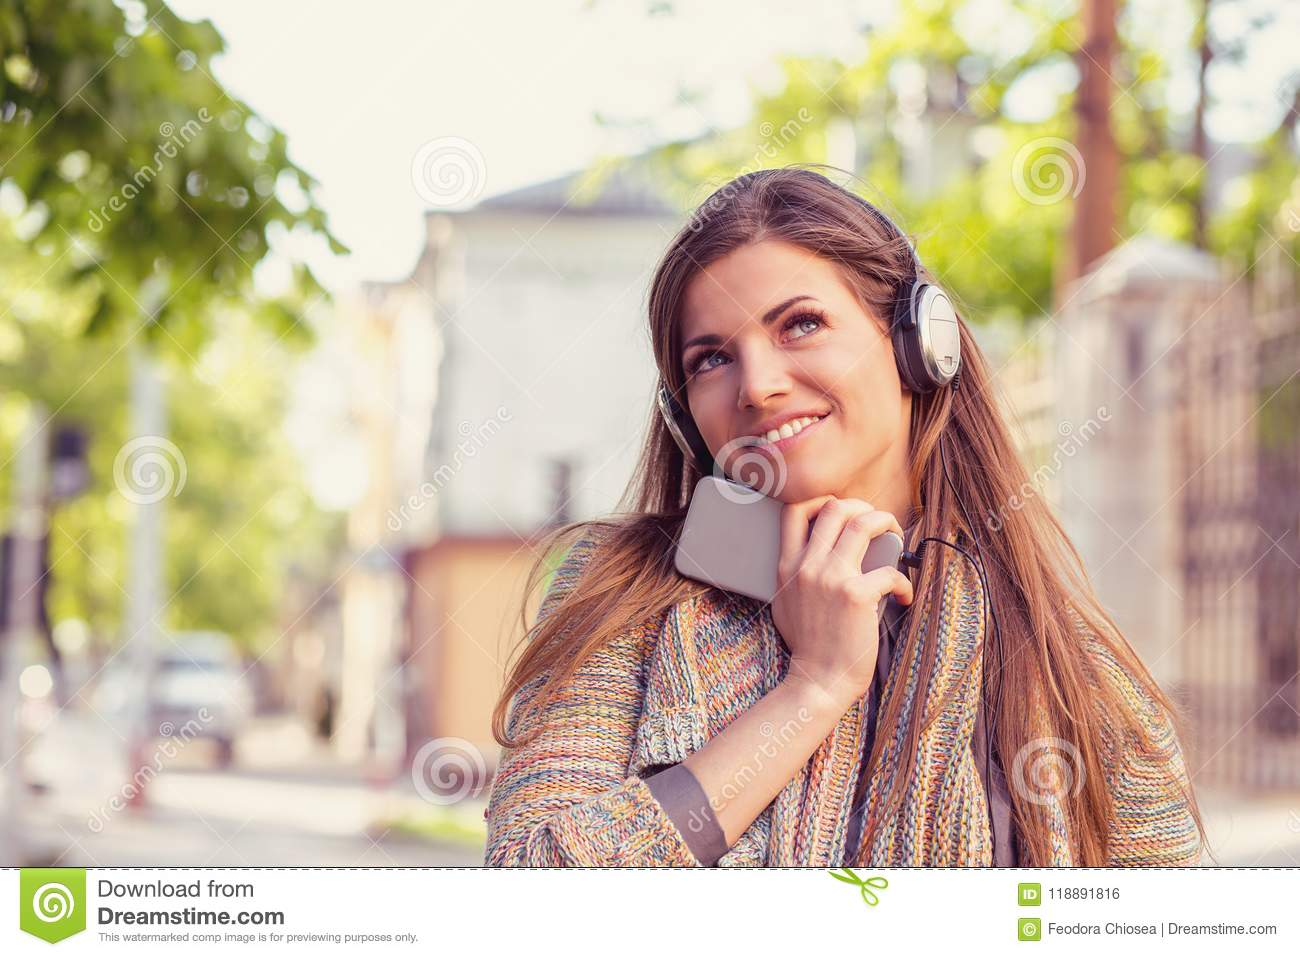 Daydreaming woman listening to the music on a smart phone walking down the street on an autumn sunny day